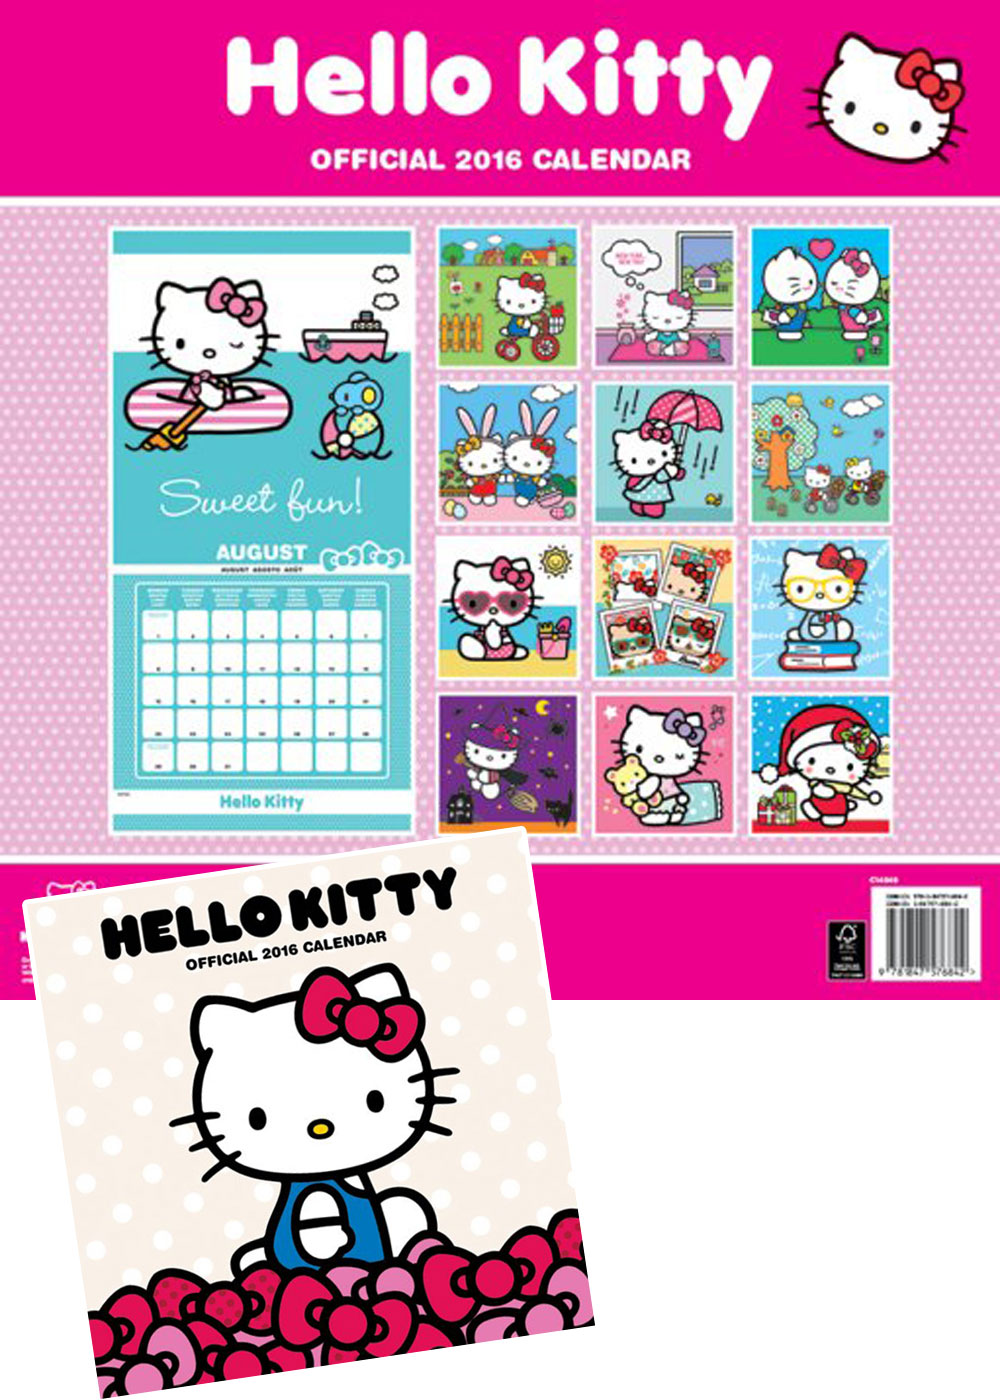 hello kitty offizieller comic kalender 2016 kalender 30x30. Black Bedroom Furniture Sets. Home Design Ideas